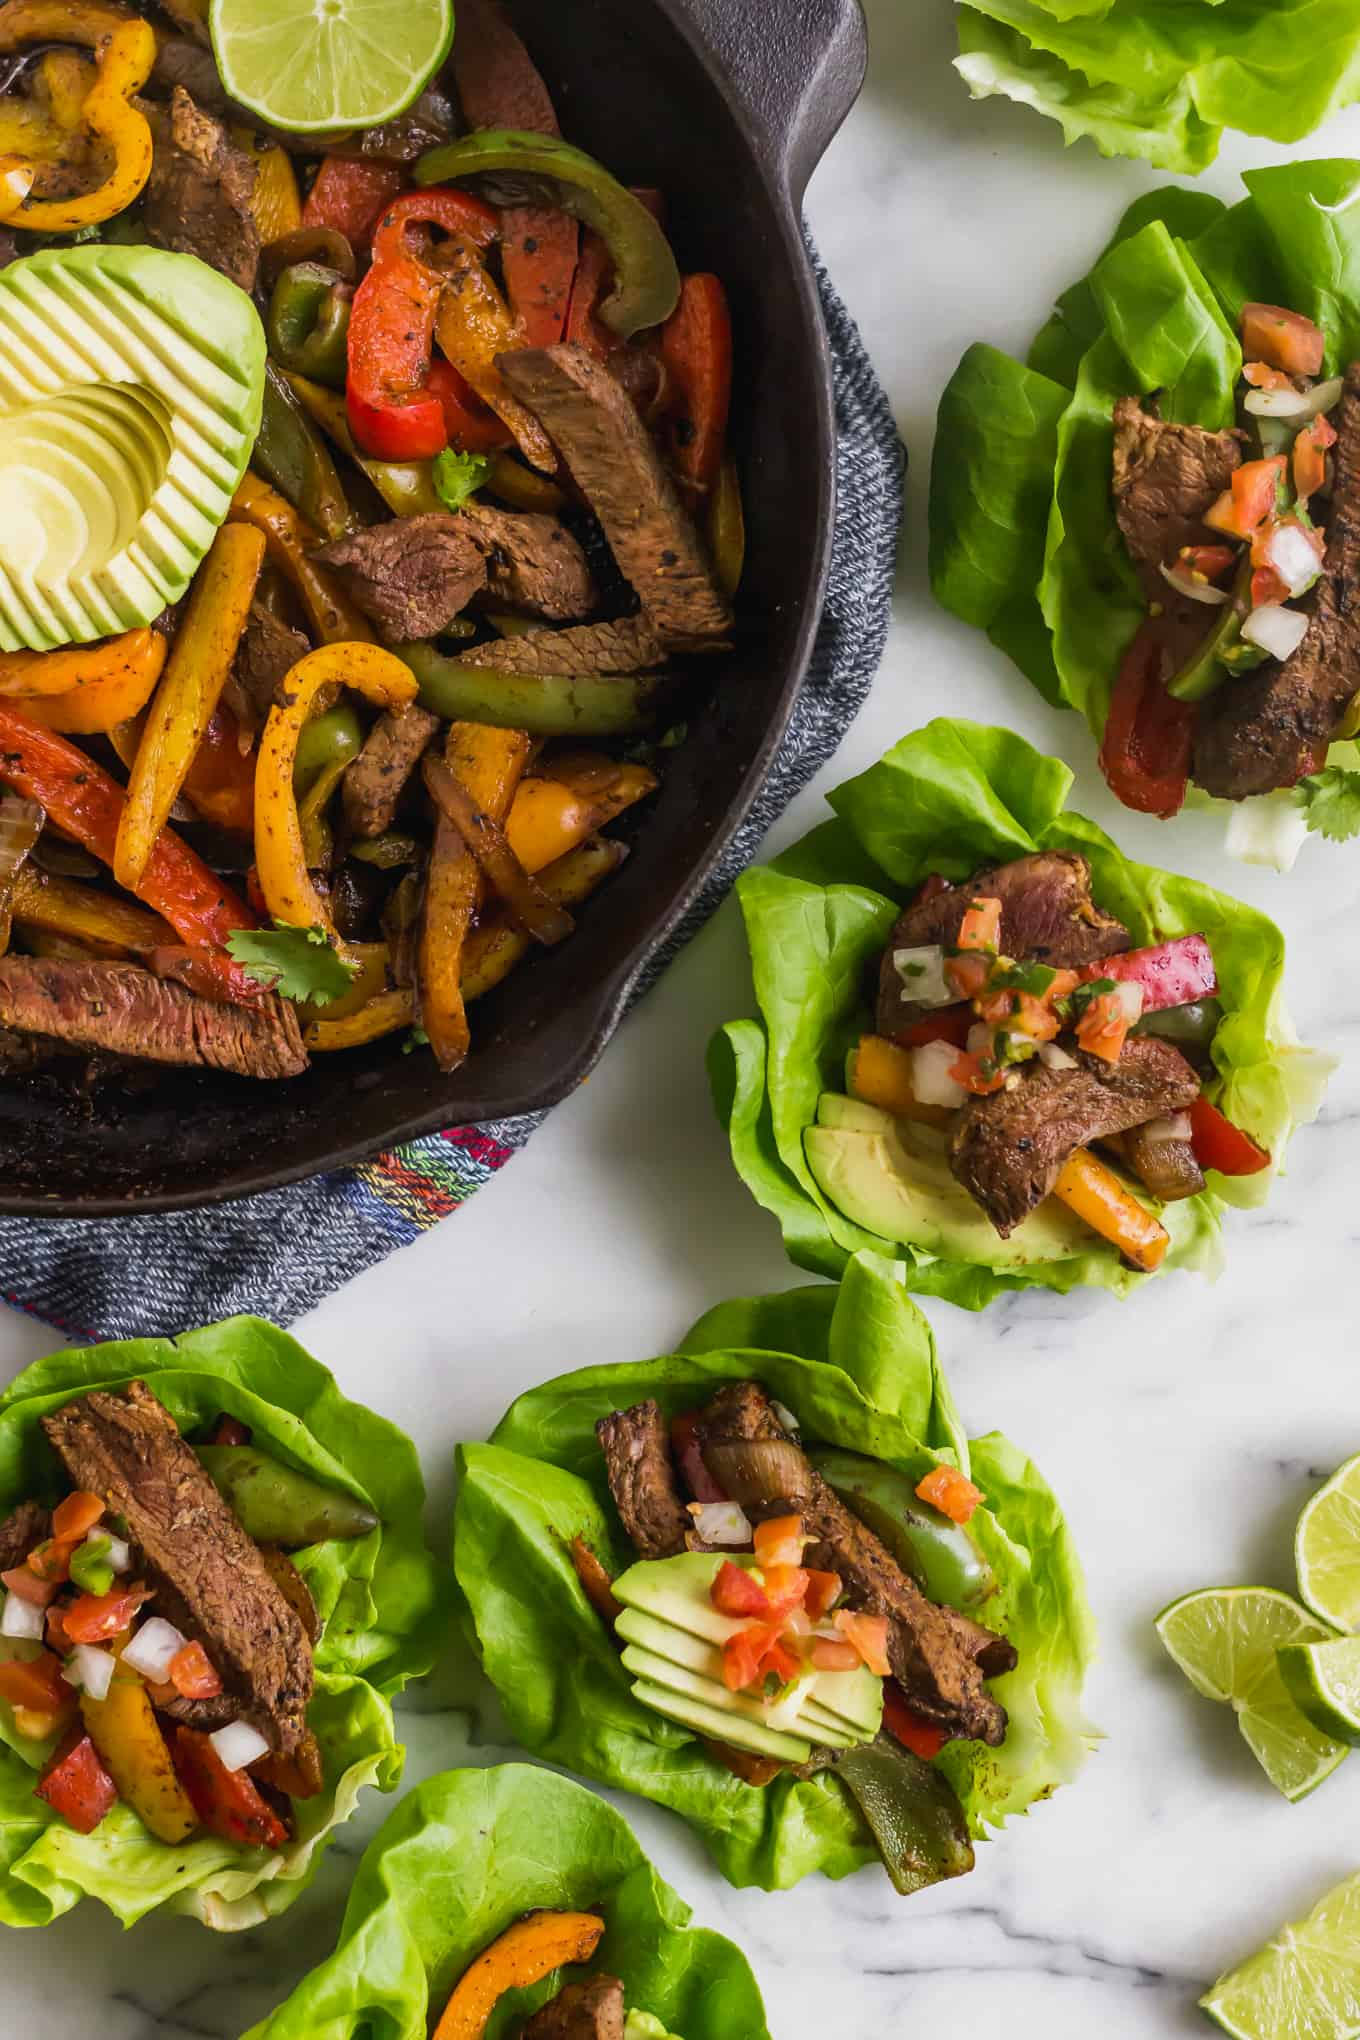 Large cast iron panned filled with steak fajitas and avocado, surrounded by a bunch of steak fajita lettuce wraps and cut limes on a white countertop